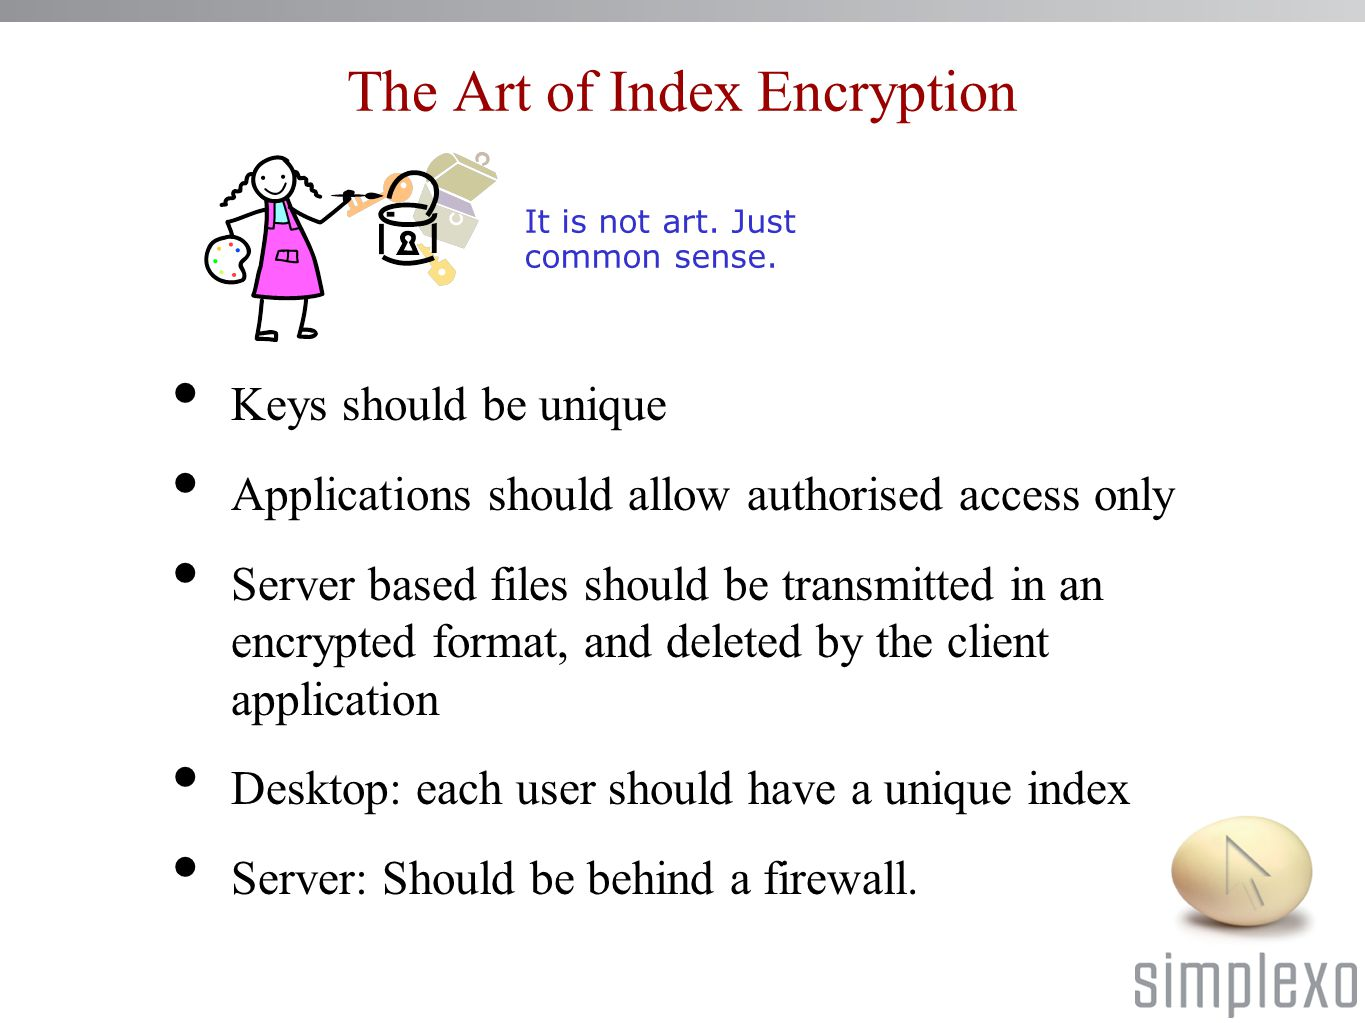 The Art of Index Encryption Keys should be unique Applications should allow authorised access only Server based files should be transmitted in an encrypted format, and deleted by the client application Desktop: each user should have a unique index Server: Should be behind a firewall.